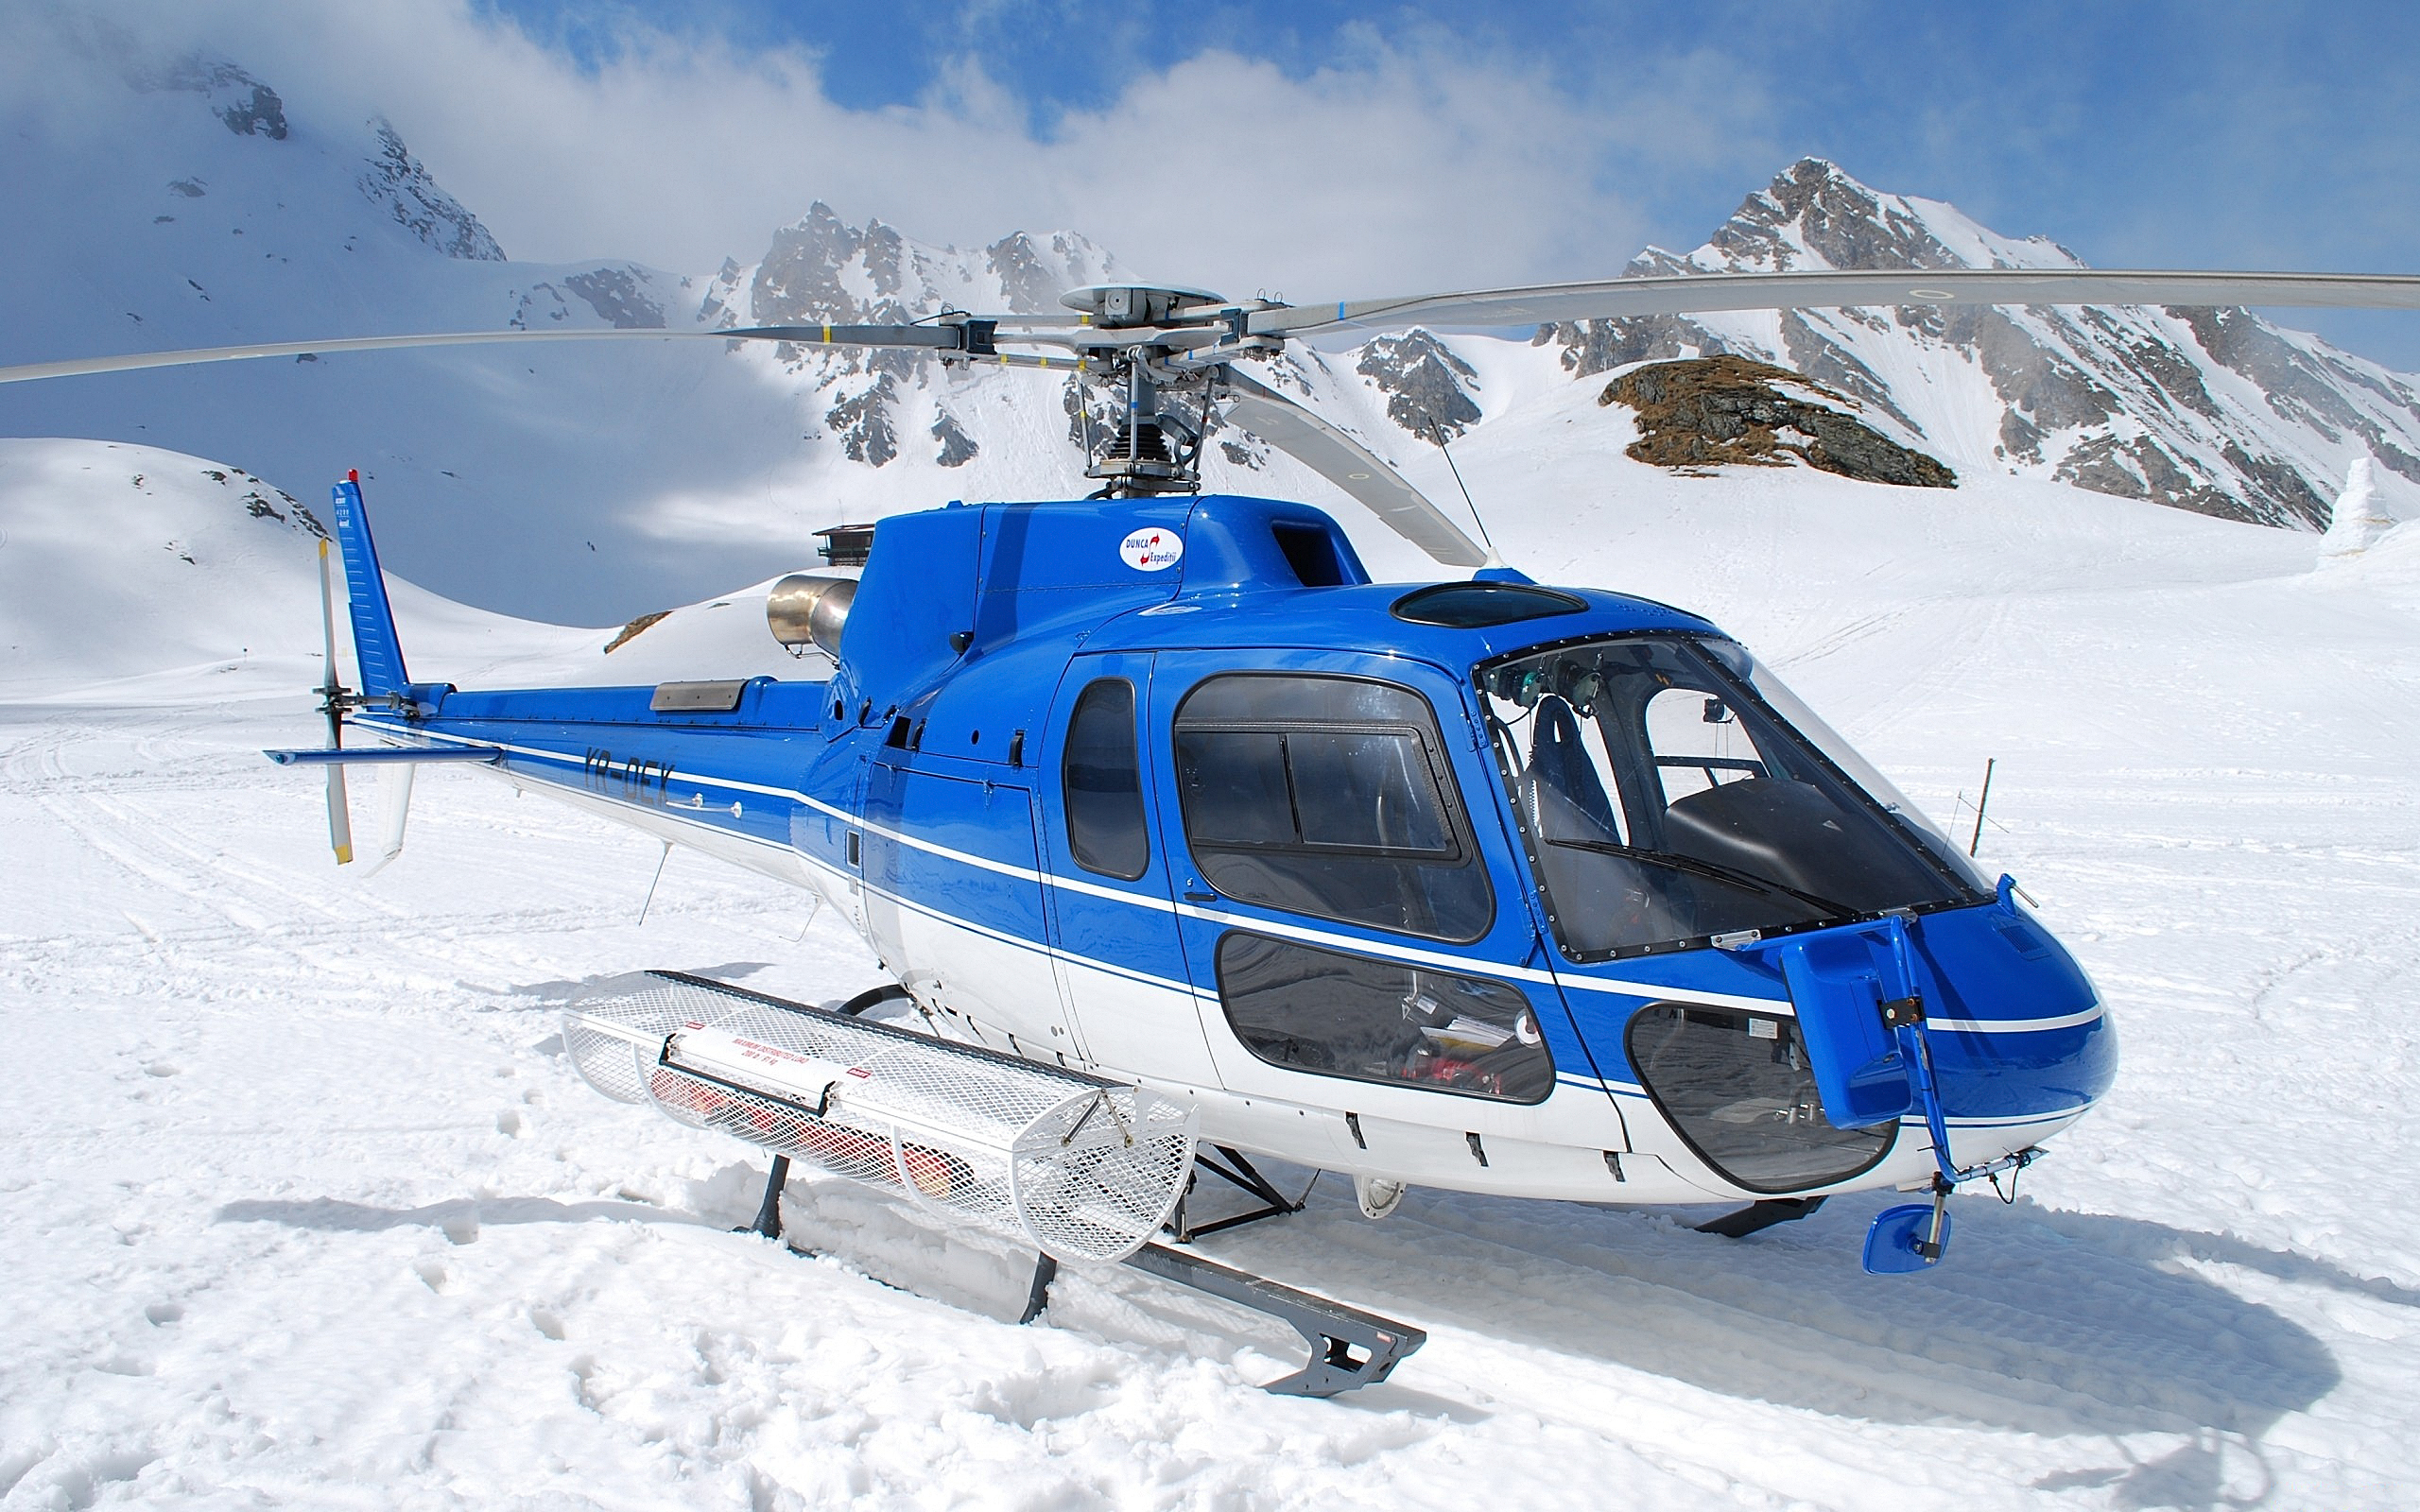 Helicopter Wallpaper 1507